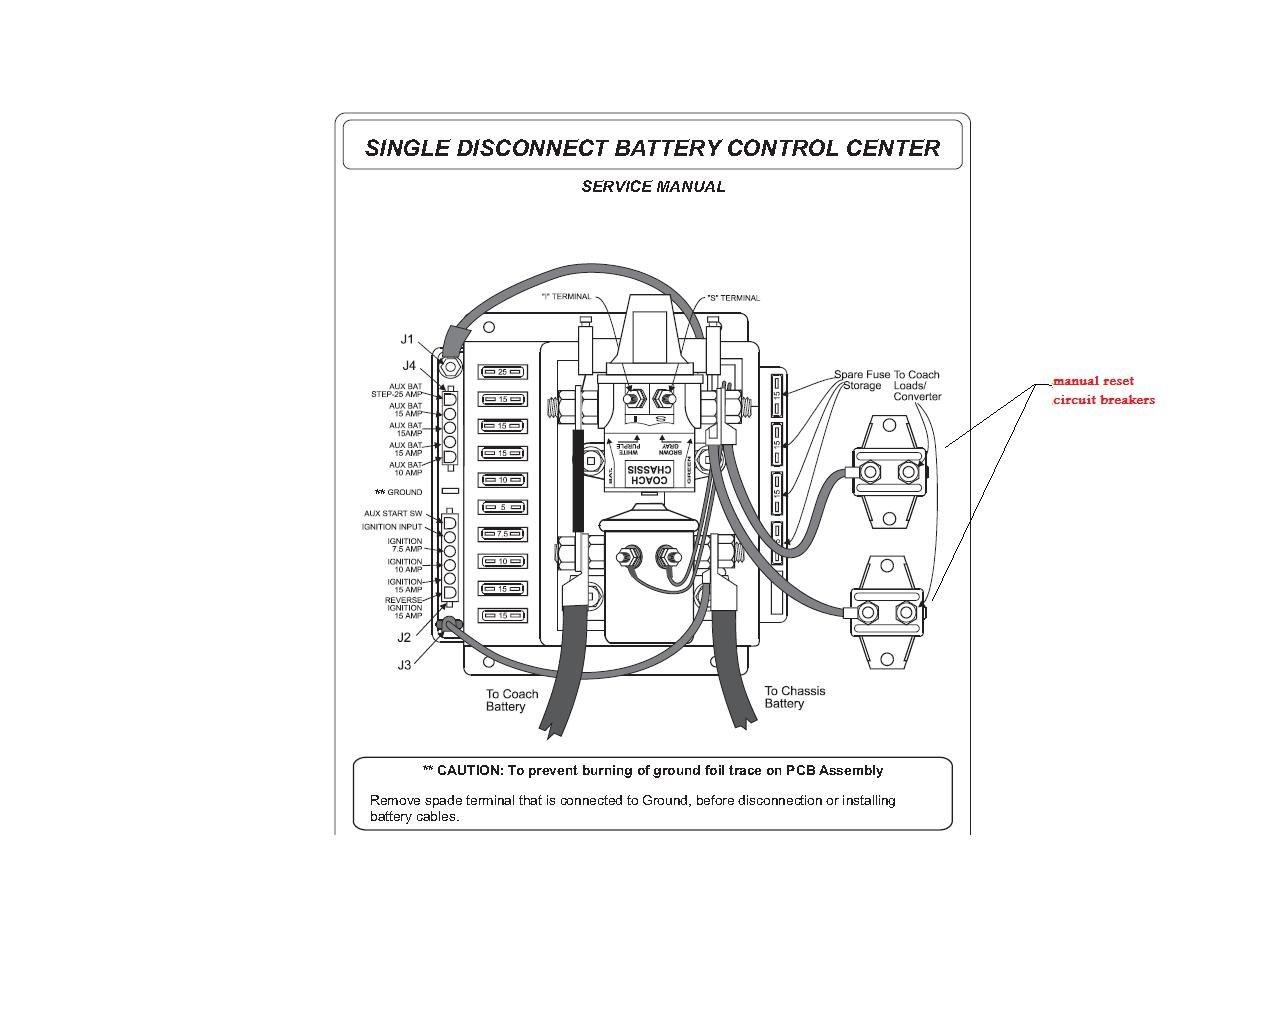 Garden Tractor Ignition Wiring Diagrams Model 917257730 ... on